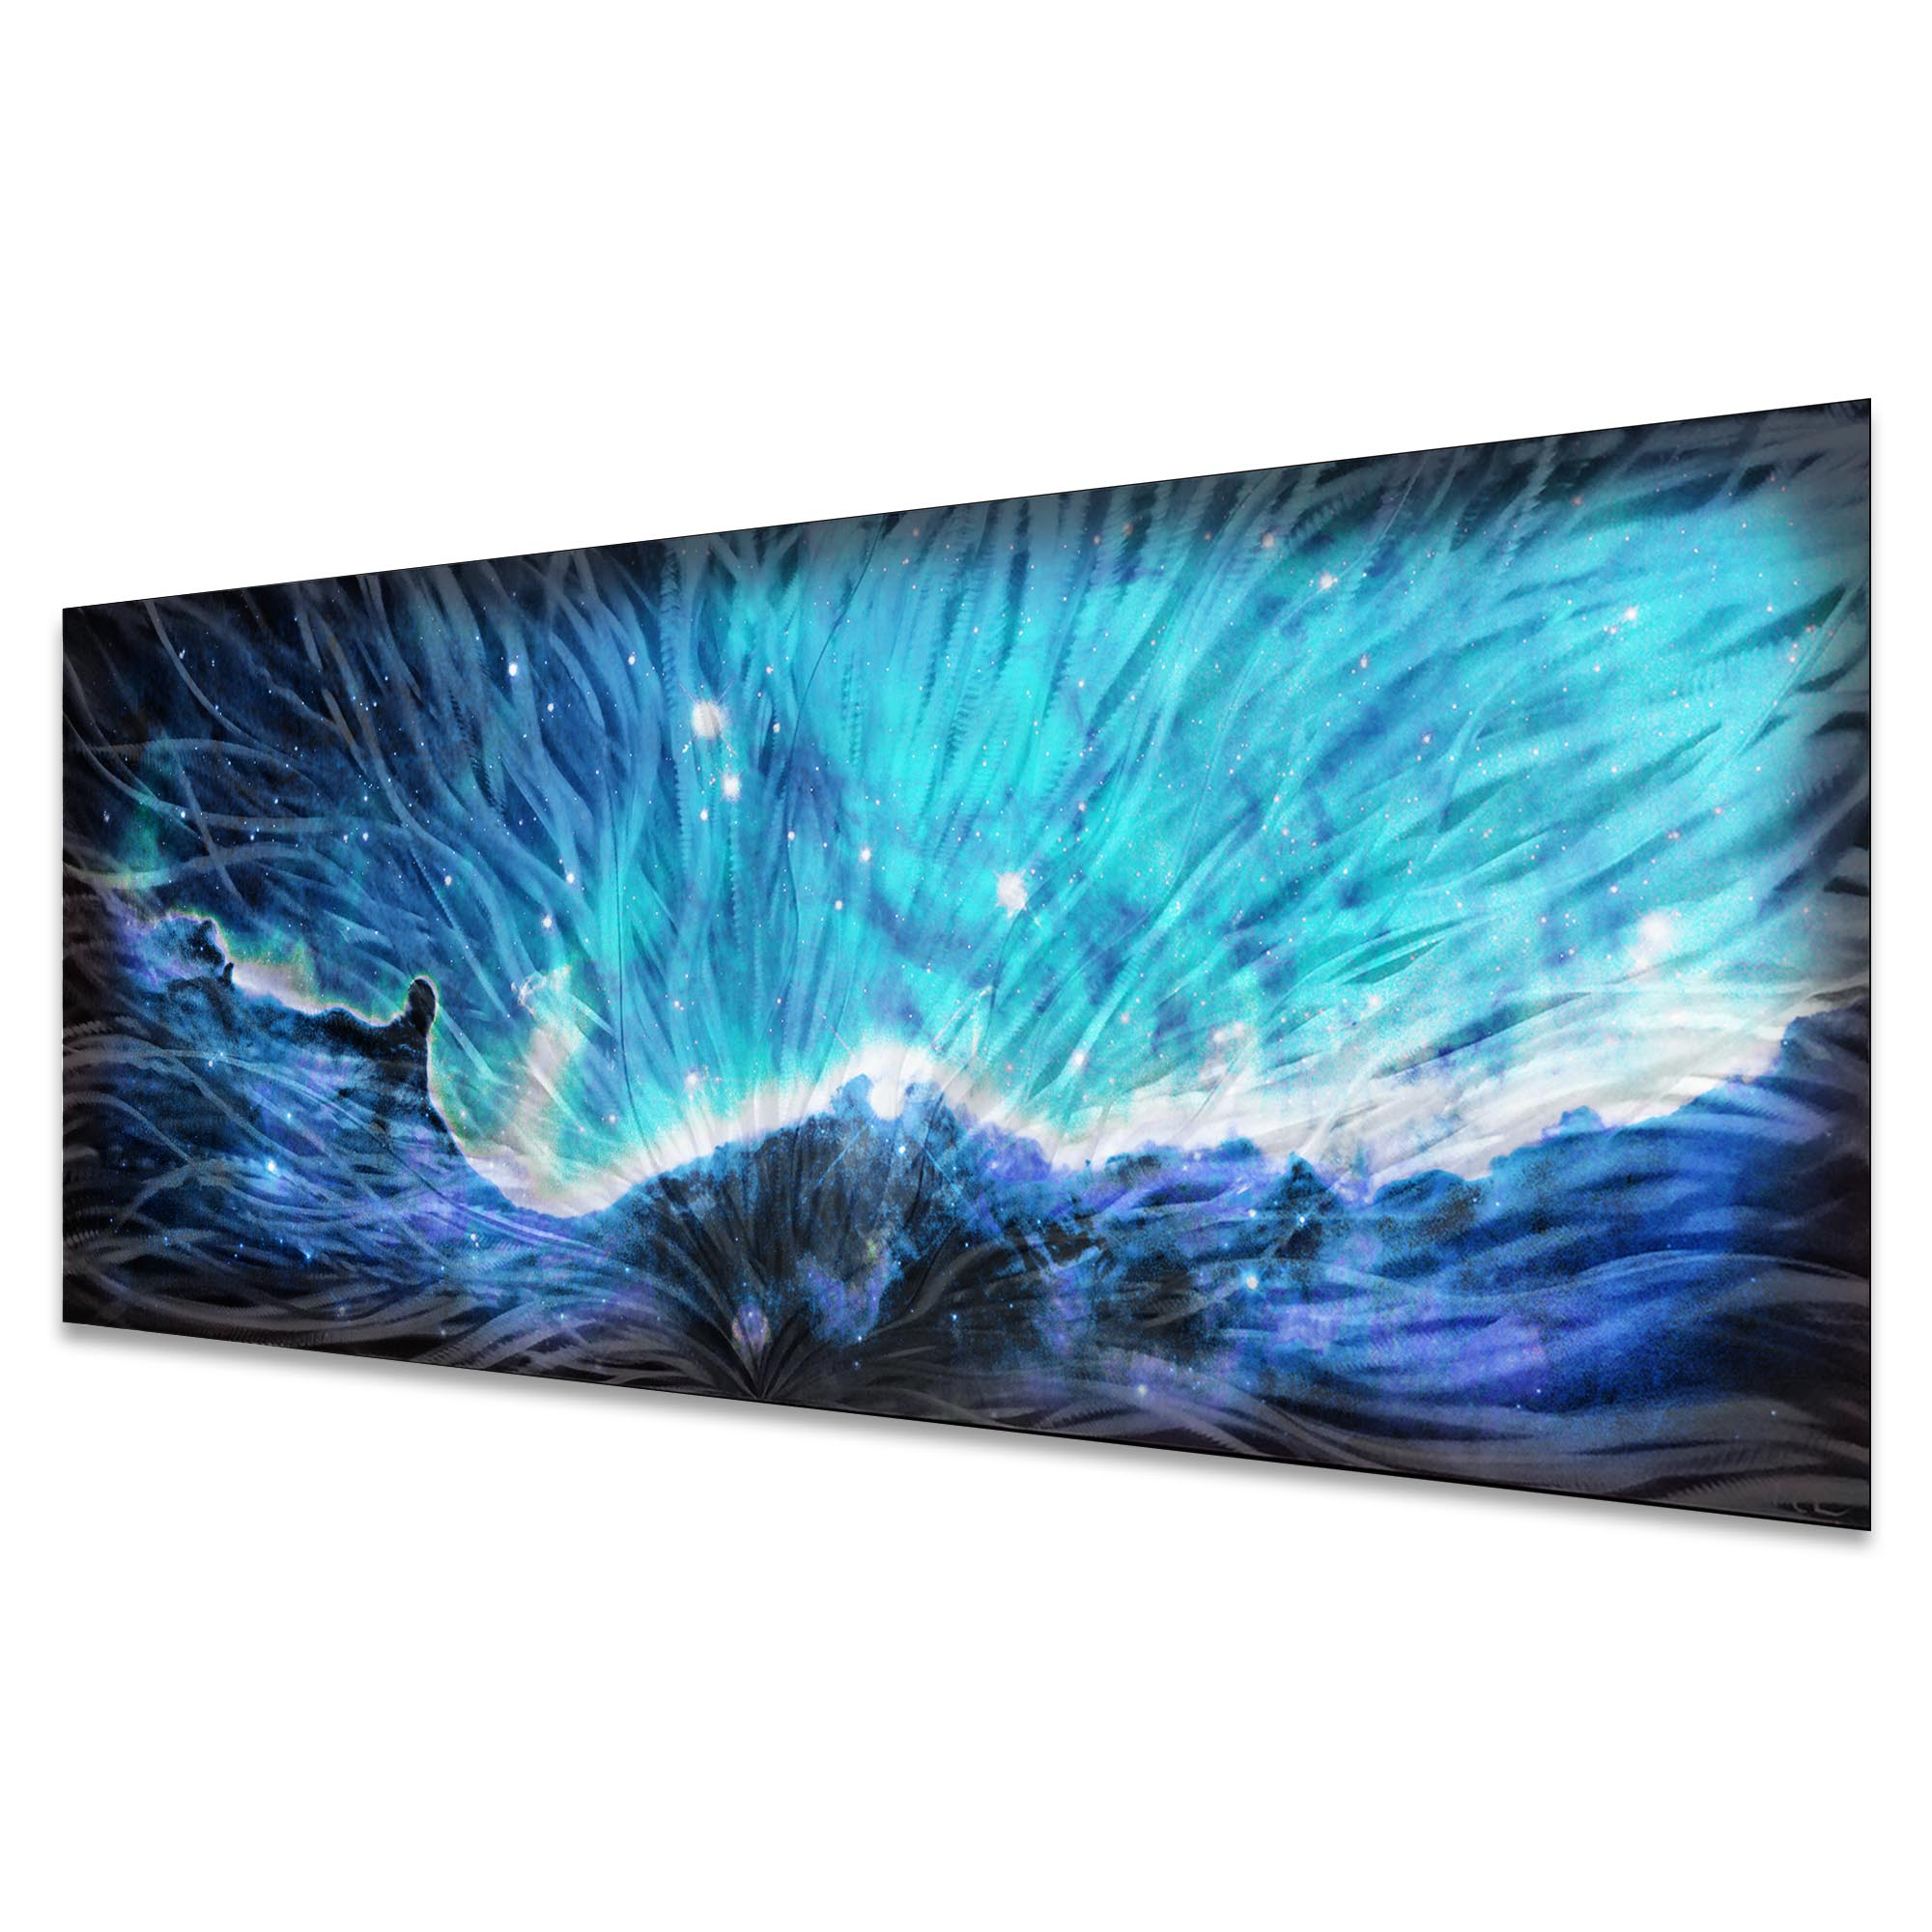 Celestial Landscape Blue by Helena Martin - Original Abstract Art on Ground and Colored Metal - Image 2